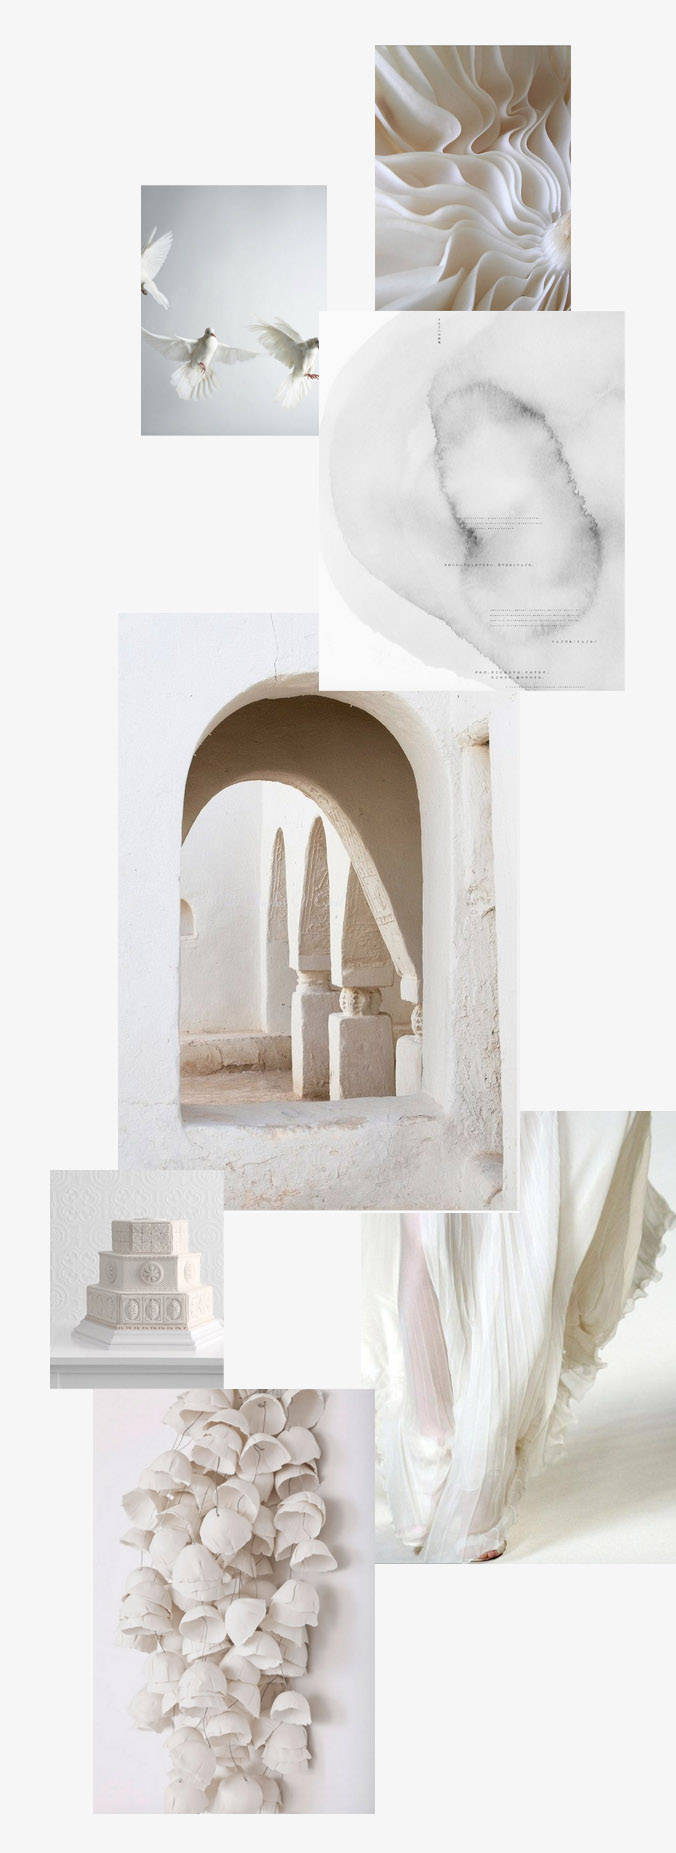 Lexia Frank is a destination wedding photographer based on the west coast of the USA. she is a film photographer for weddings, shooting celebrity weddings and luxury weddings worldwide. here, is an all white wedding inspiration board.